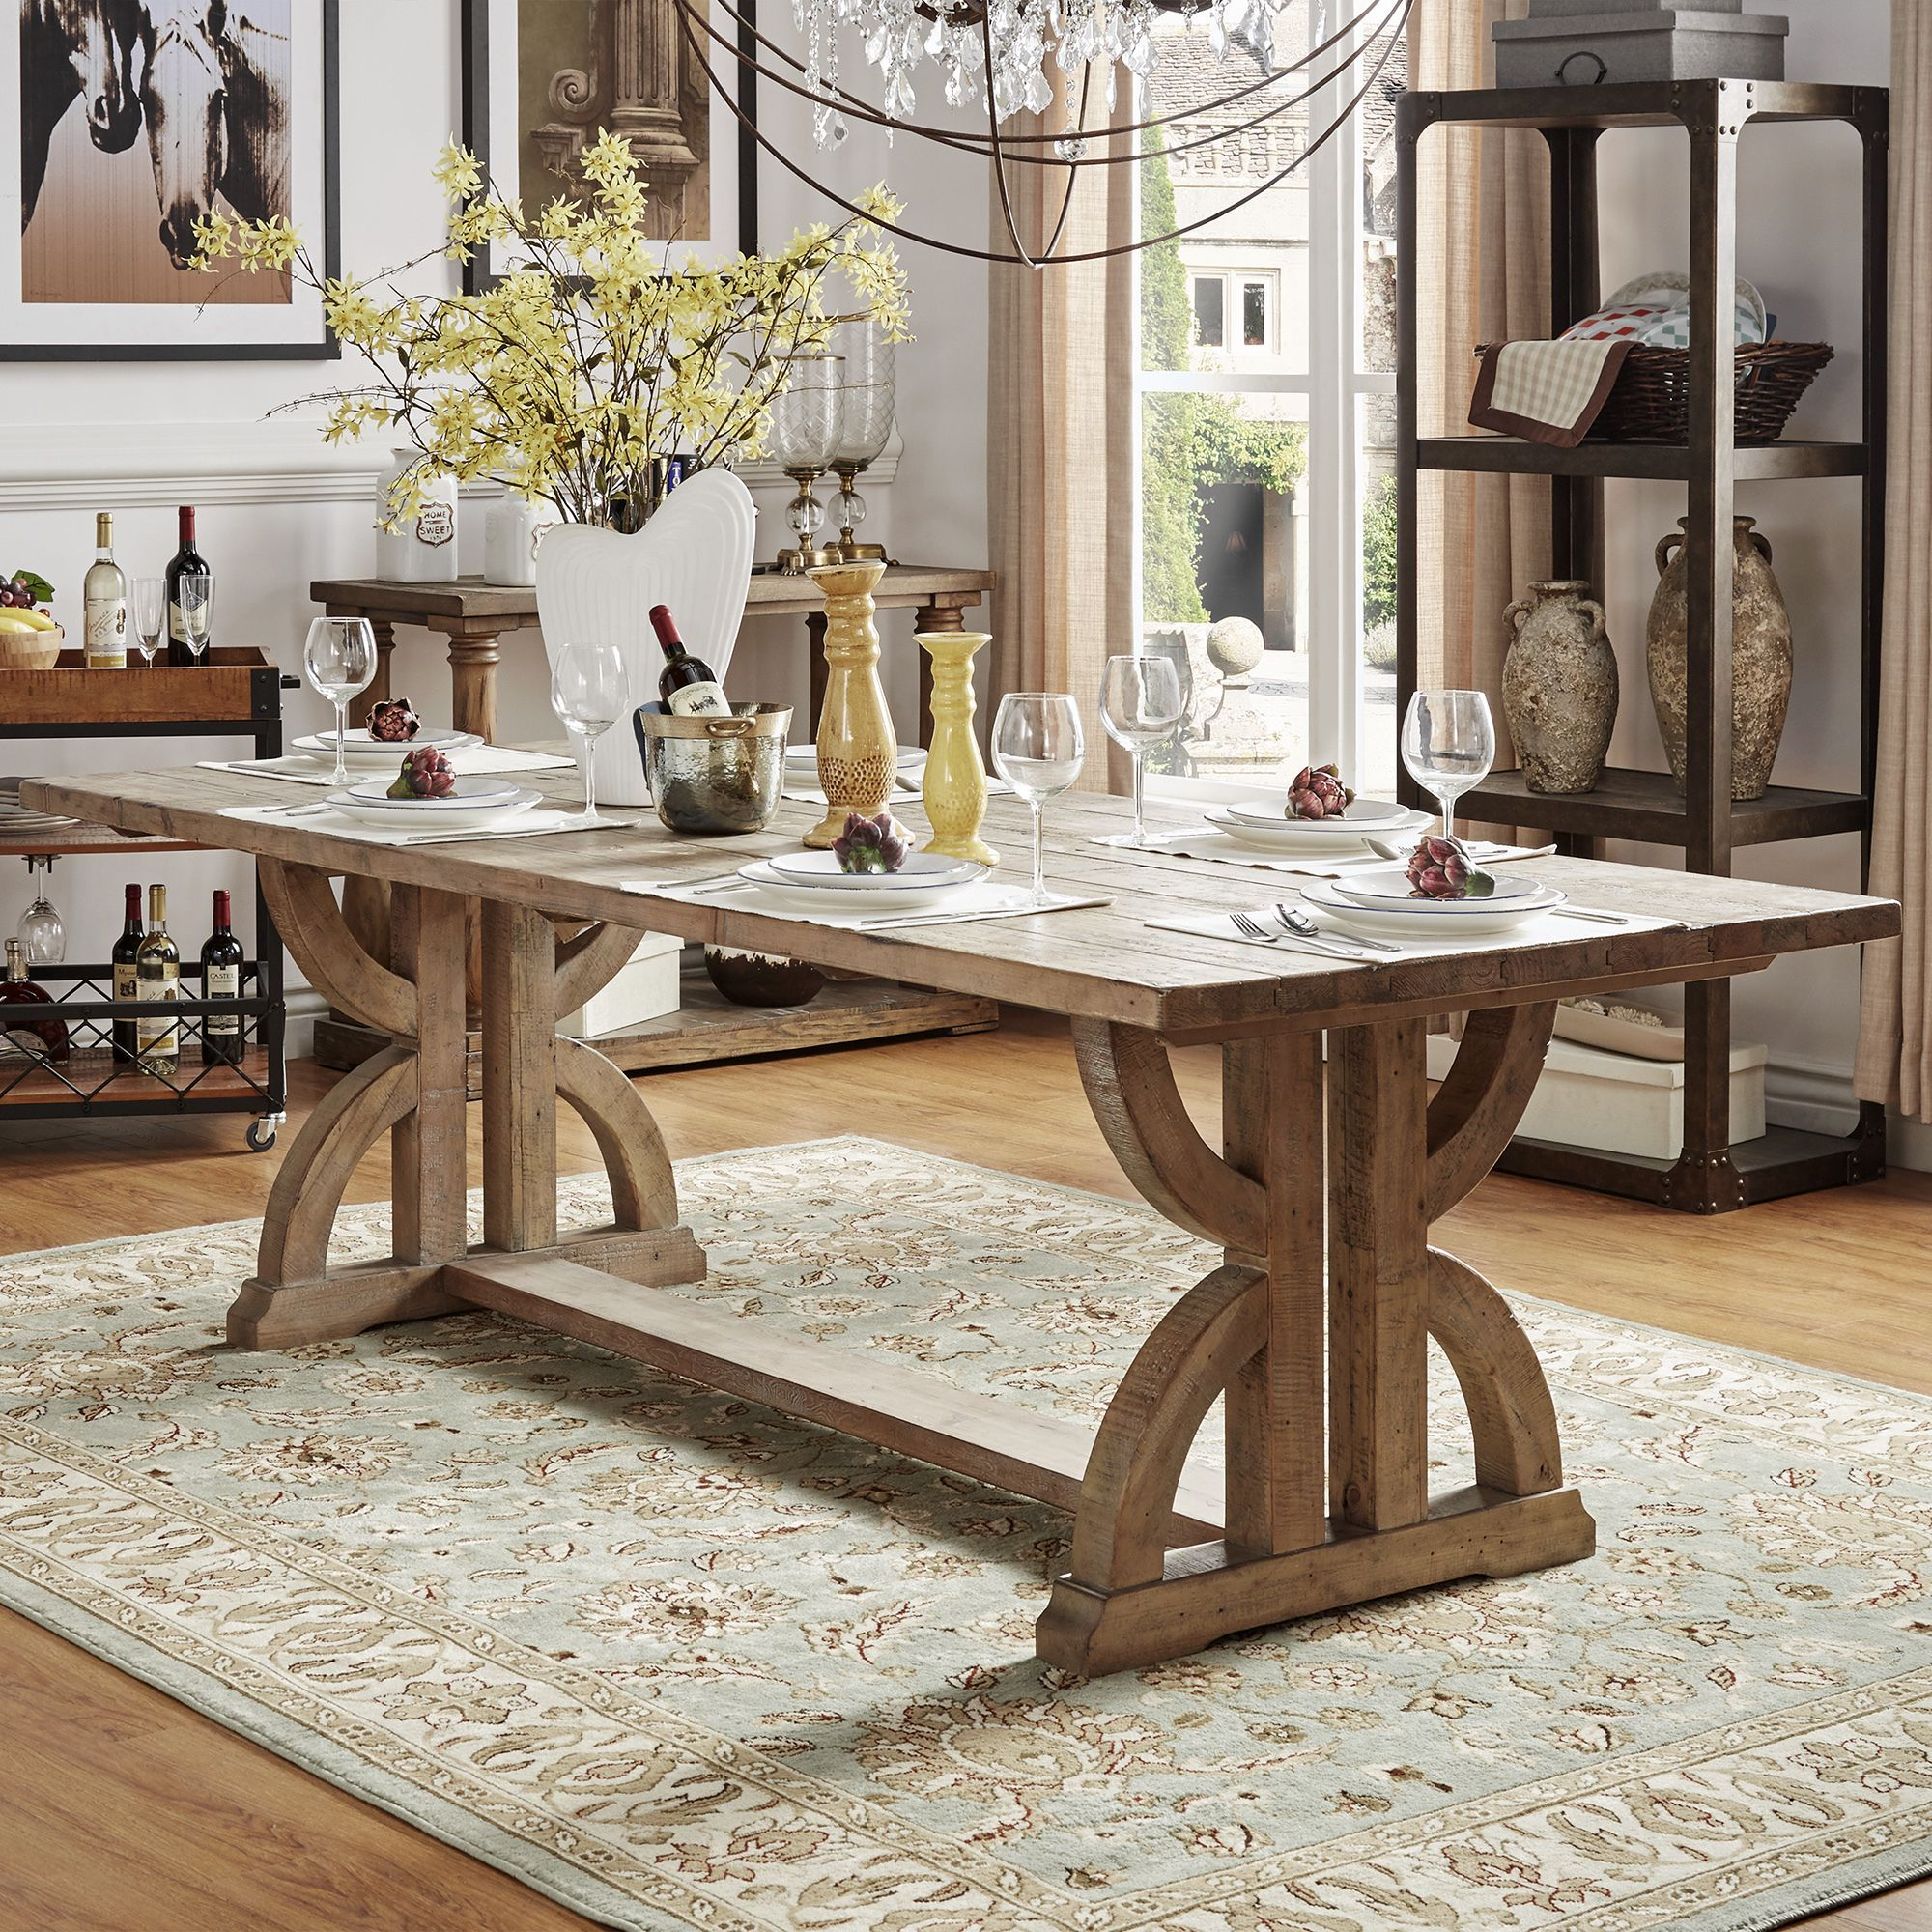 Overstock Dining Room Tables: SIGNAL HILLS Paloma Salvaged Reclaimed Pine Wood